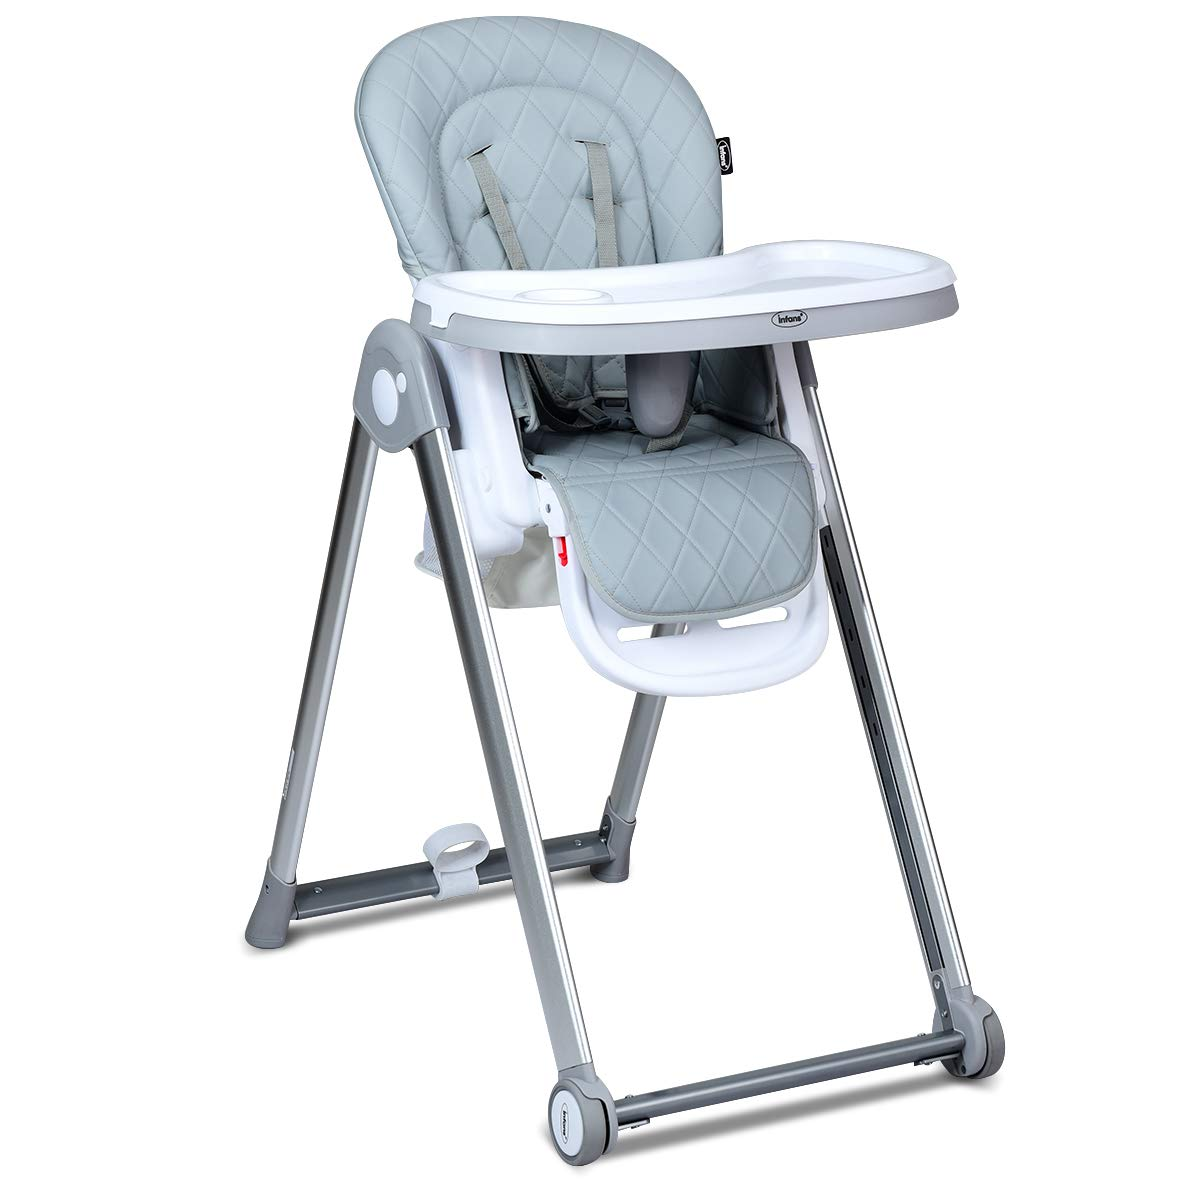 INFANS Folding High Chair for Babies &Toddlers, Space Saving with Multiple Adjustable Backrest, Footrest and Seat Height, Front Wheels, Removable Trays, Detachable Cushion, Storage Basket (Grey) by INFANS